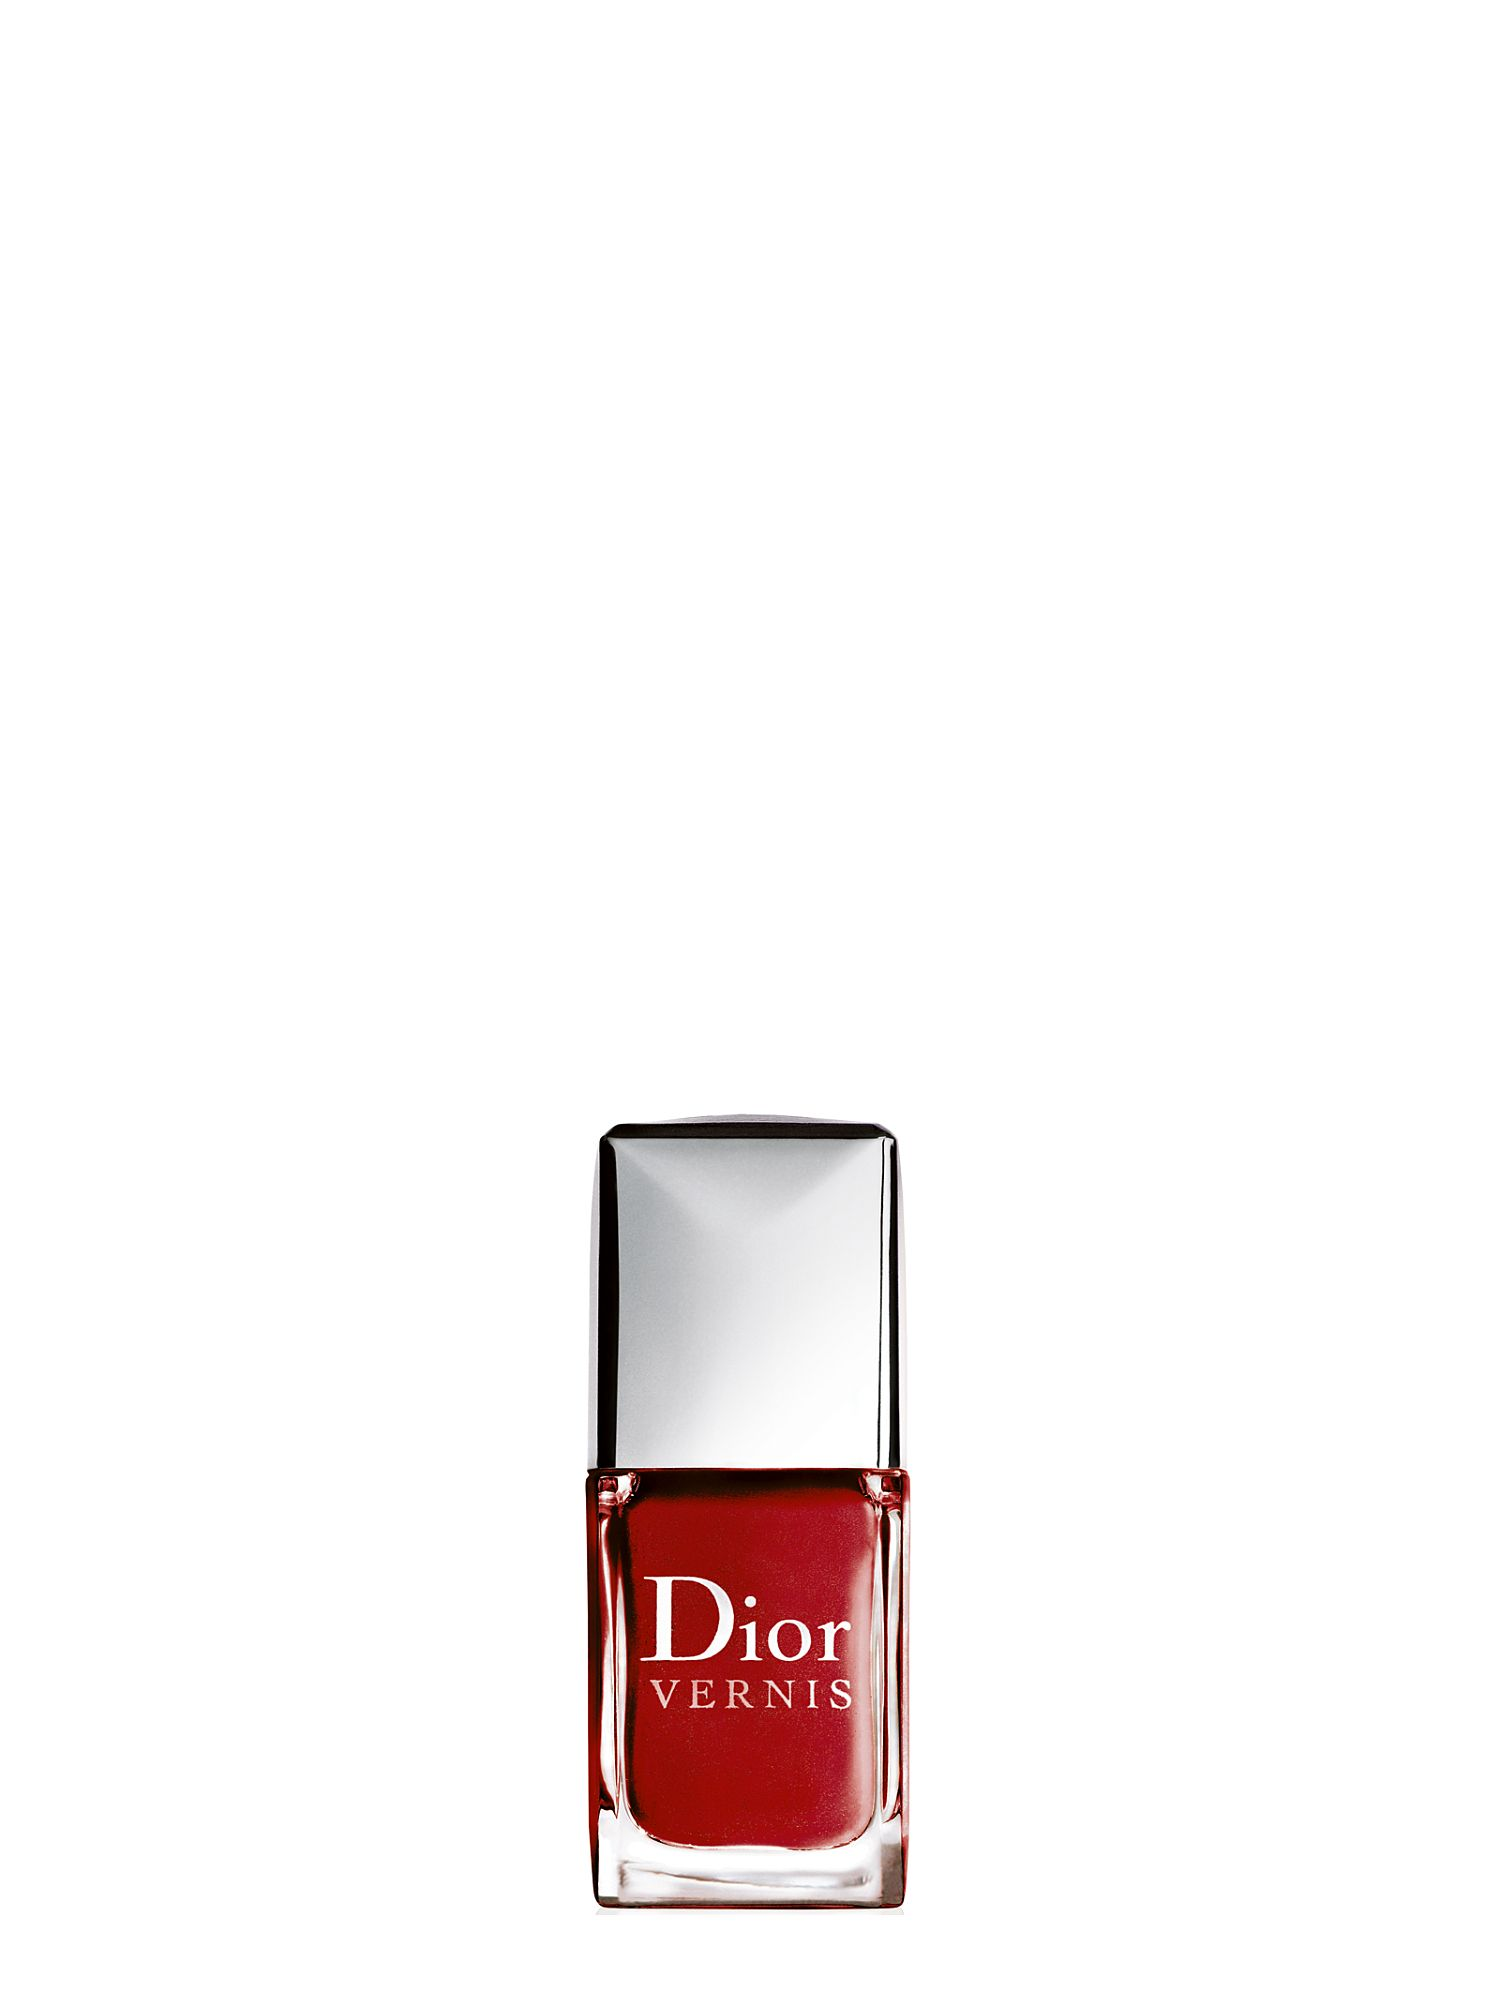 Dior Vernis Long-Wearing Nail Lacquer Black plum product image